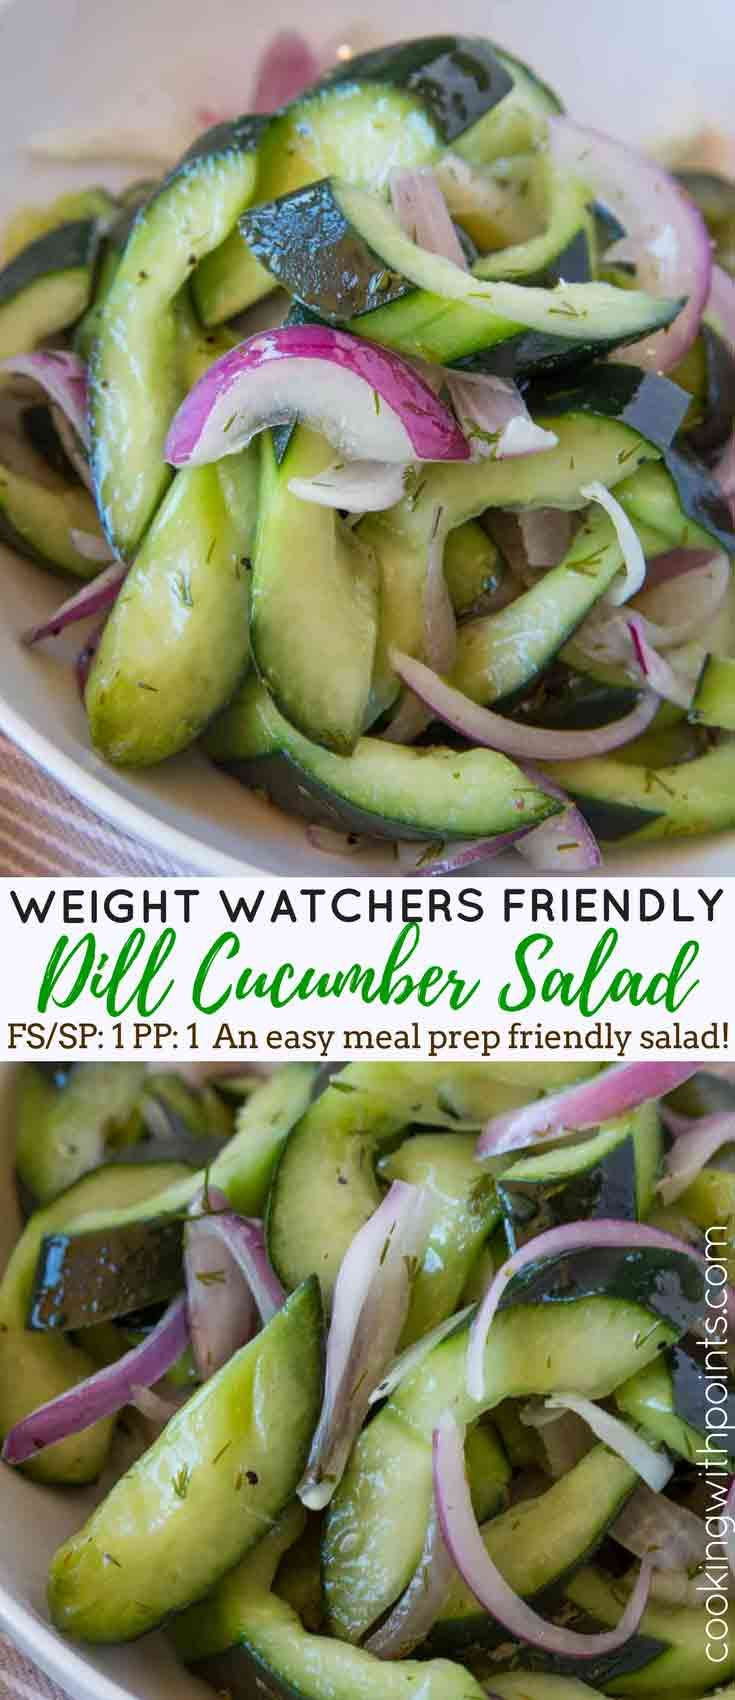 Cucumber Salad with red onions and dill in a quick slightly sweetened vinegar dressing with no added fat is just 1 smart point per serving and the perfect side dish to your meal you can make ahead and even pack for easy lunches.